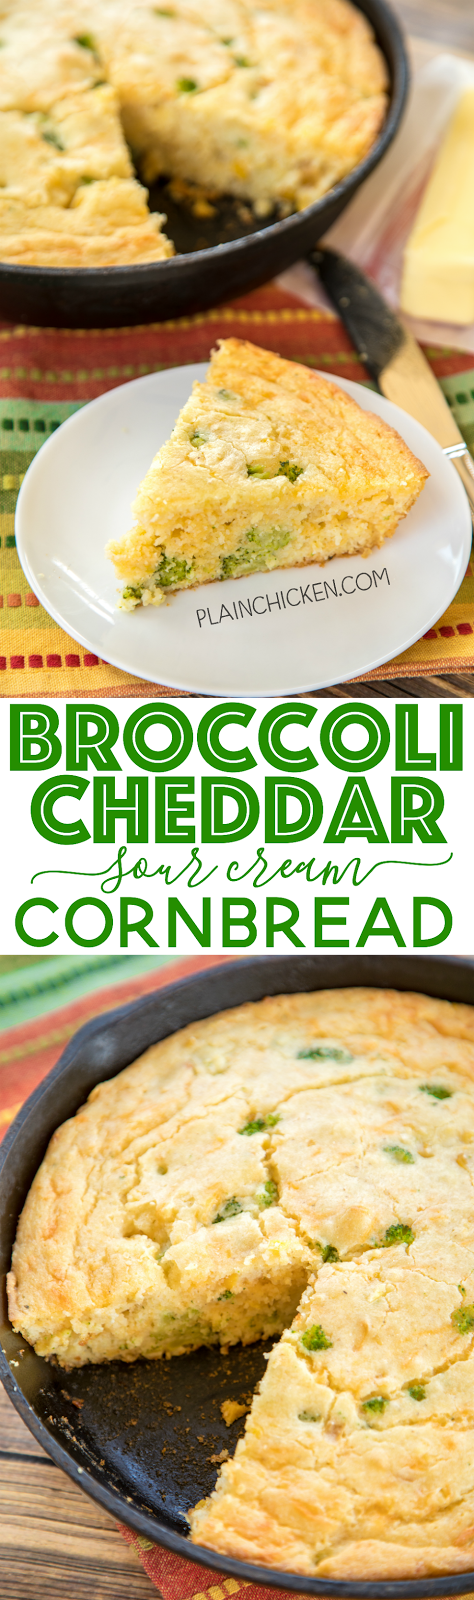 Broccoli Cheddar Sour Cream Cornbread Recipe - only 7 ingredients ...